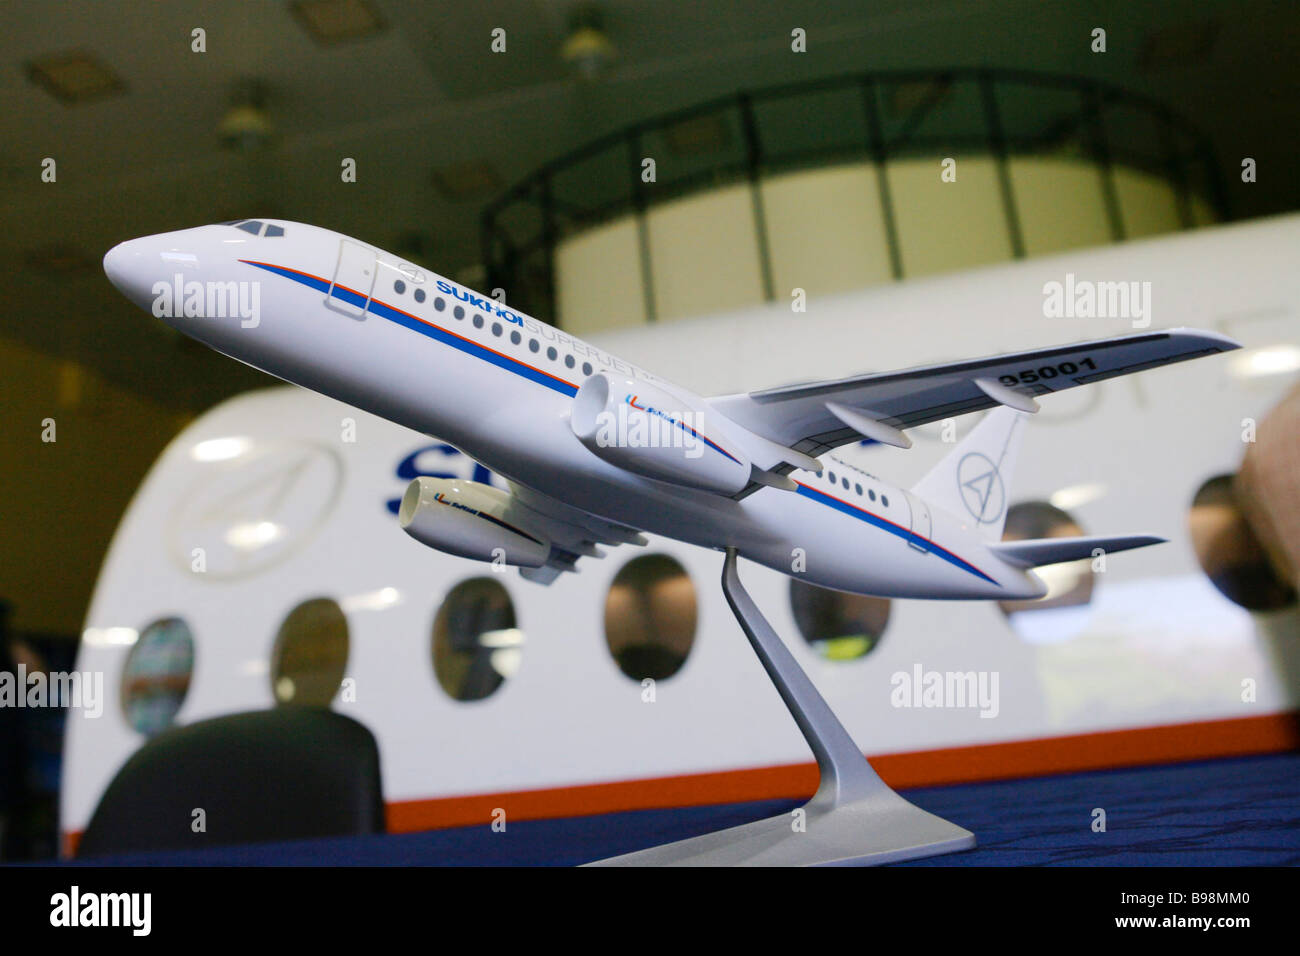 A model of the new Russian SuperJet 100 plane at the Sukhoi design bureau - Stock Image